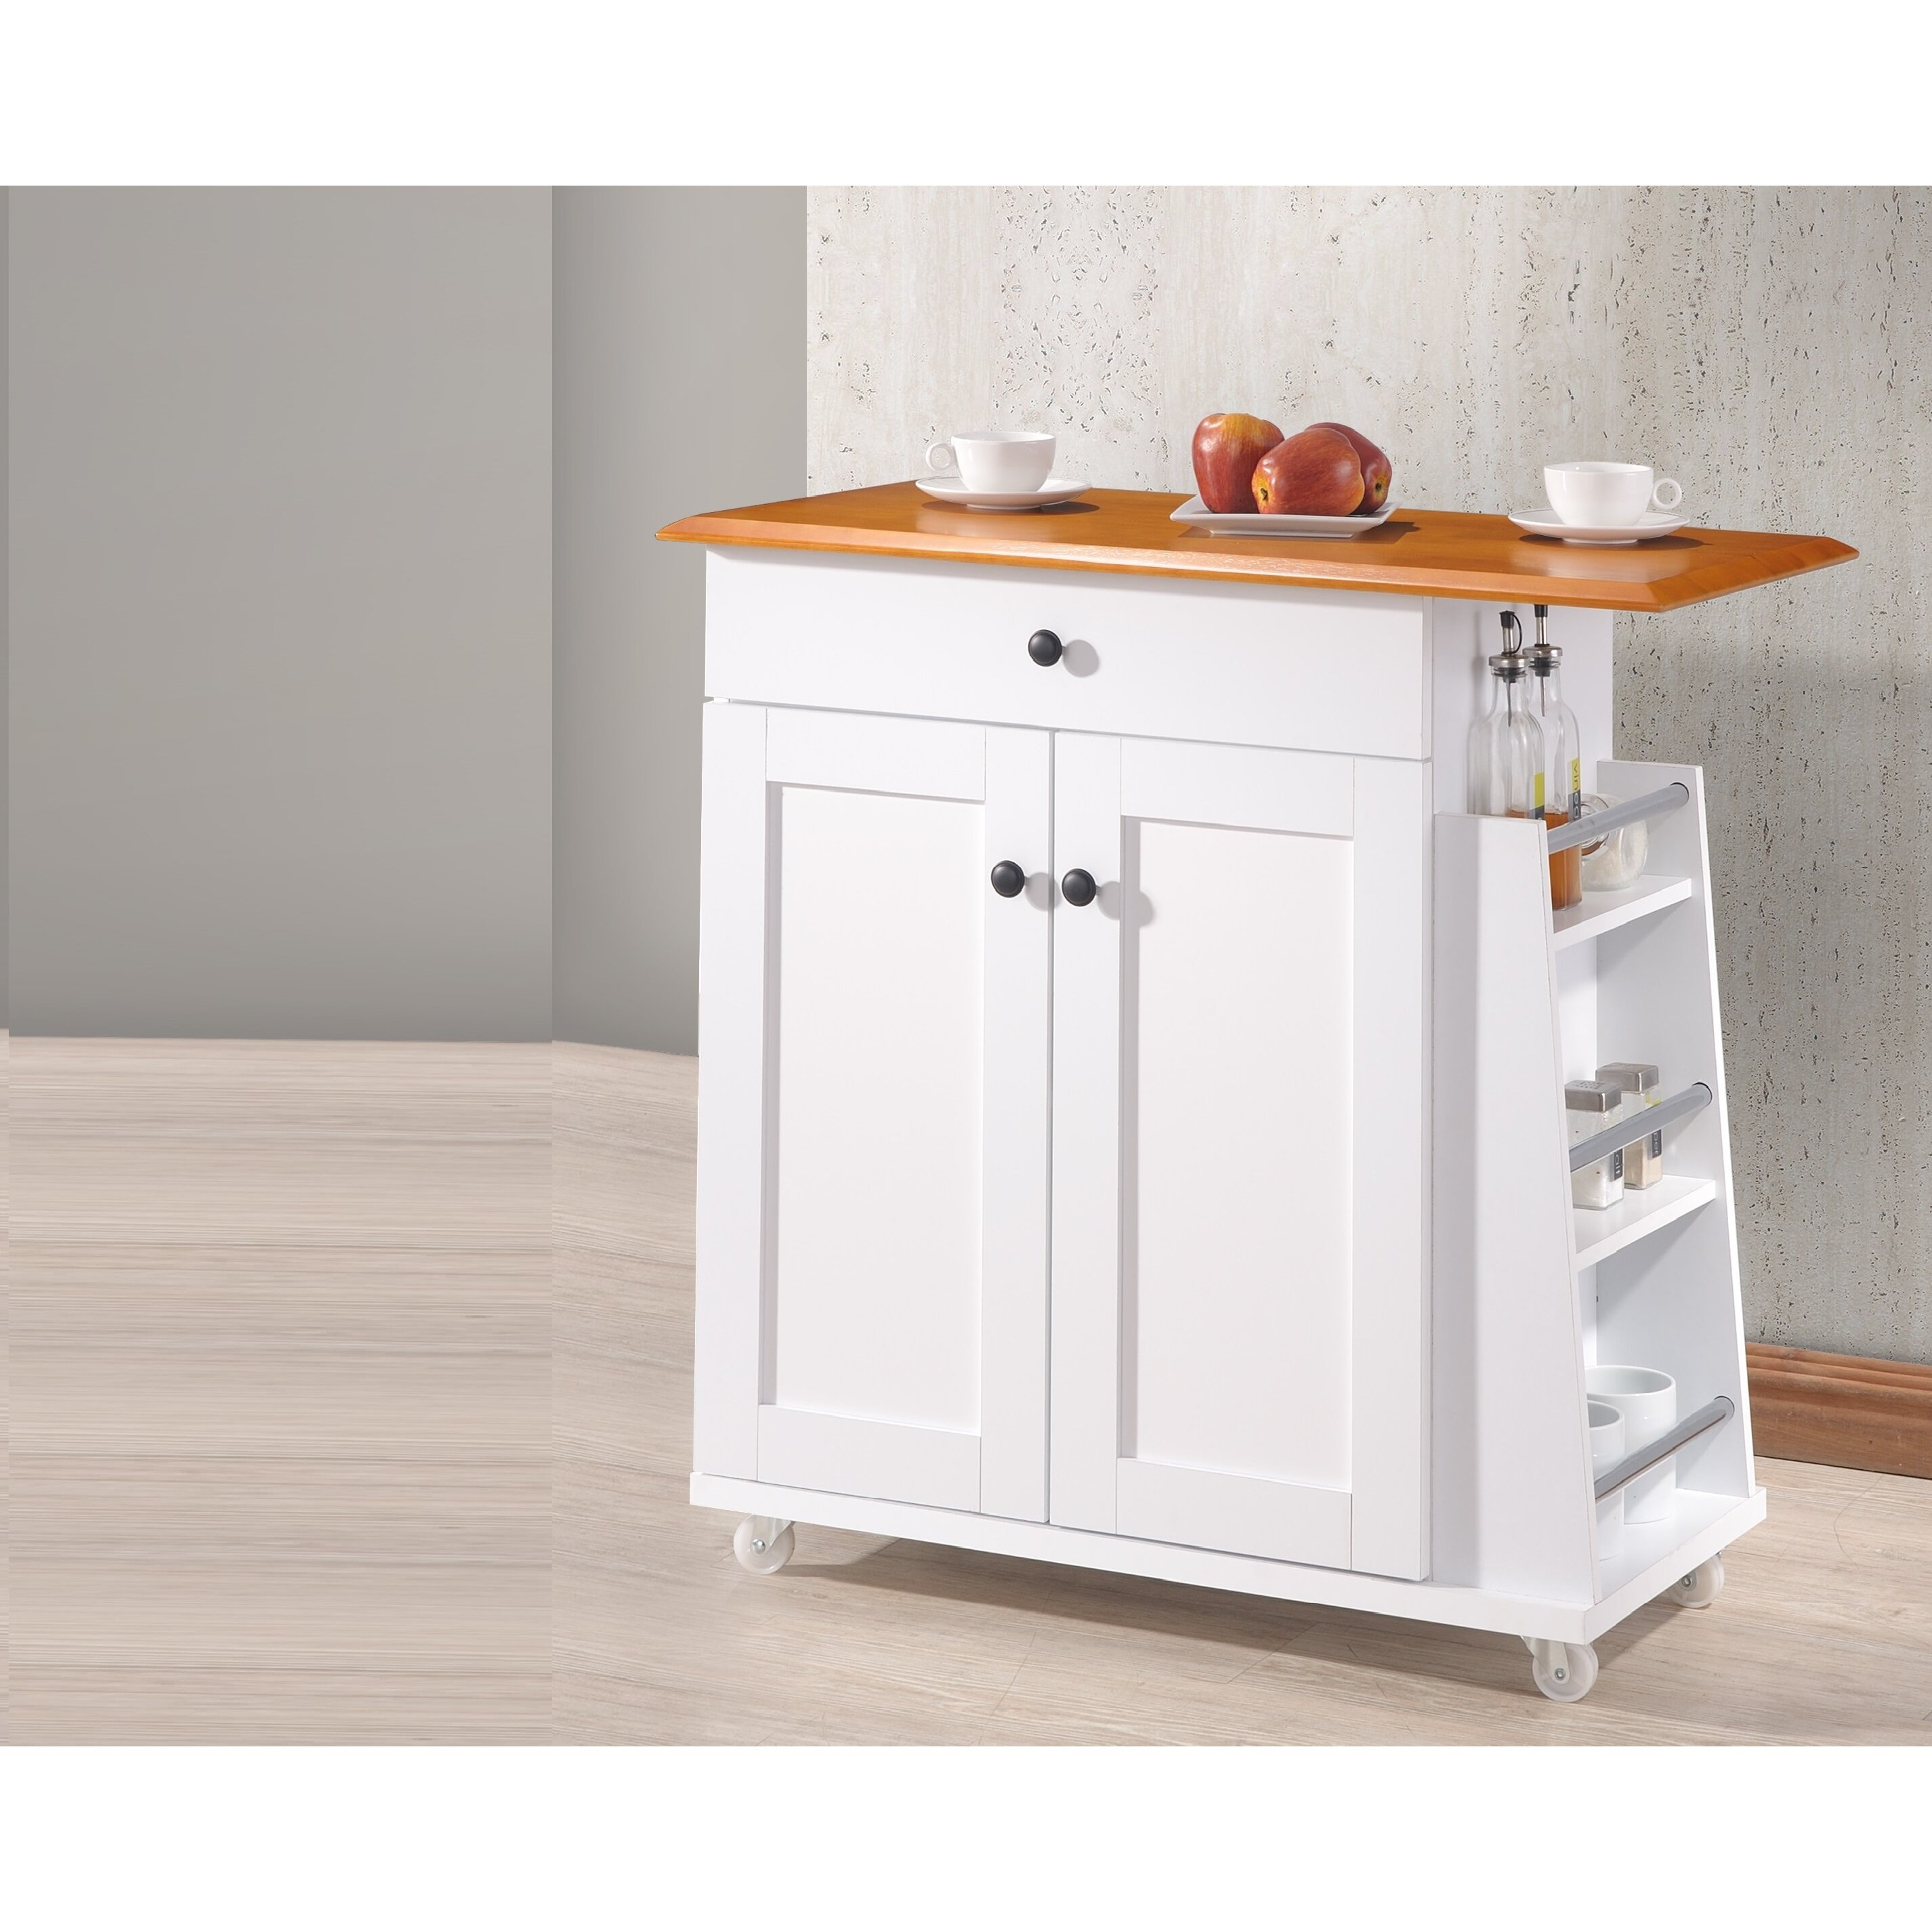 wholesale interiors baxton studio kitchen cart amp reviews